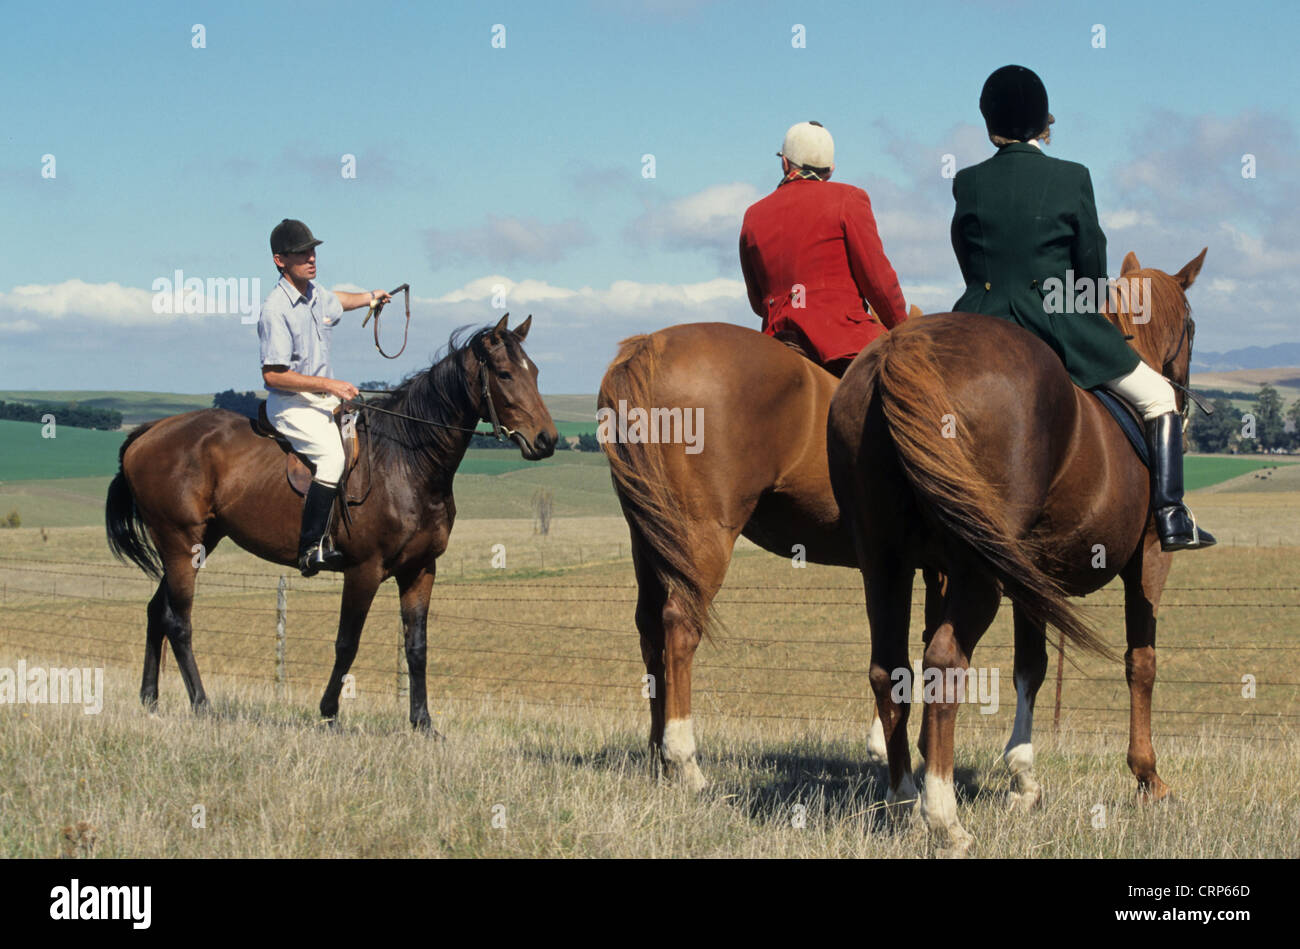 Master of Hunt and wife with local landowner, waiting on horseback during harrier hunt, hunting for hares or foxes Stock Photo